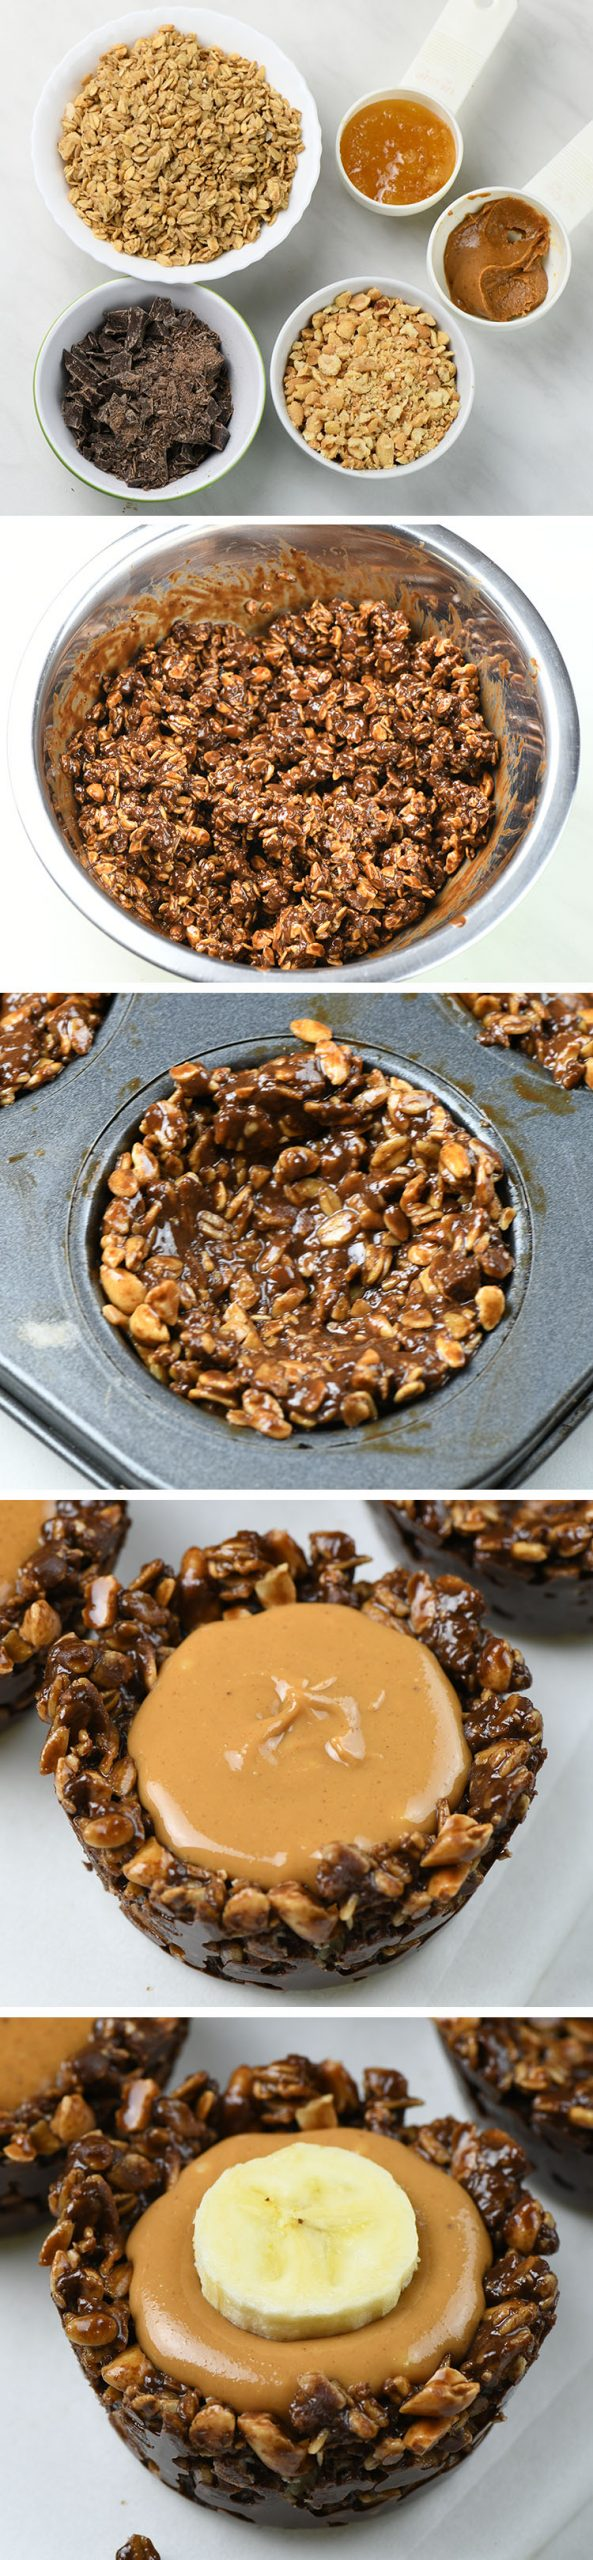 Chocolate Granola Cups with Peanut Butter Filling step by step instruction.